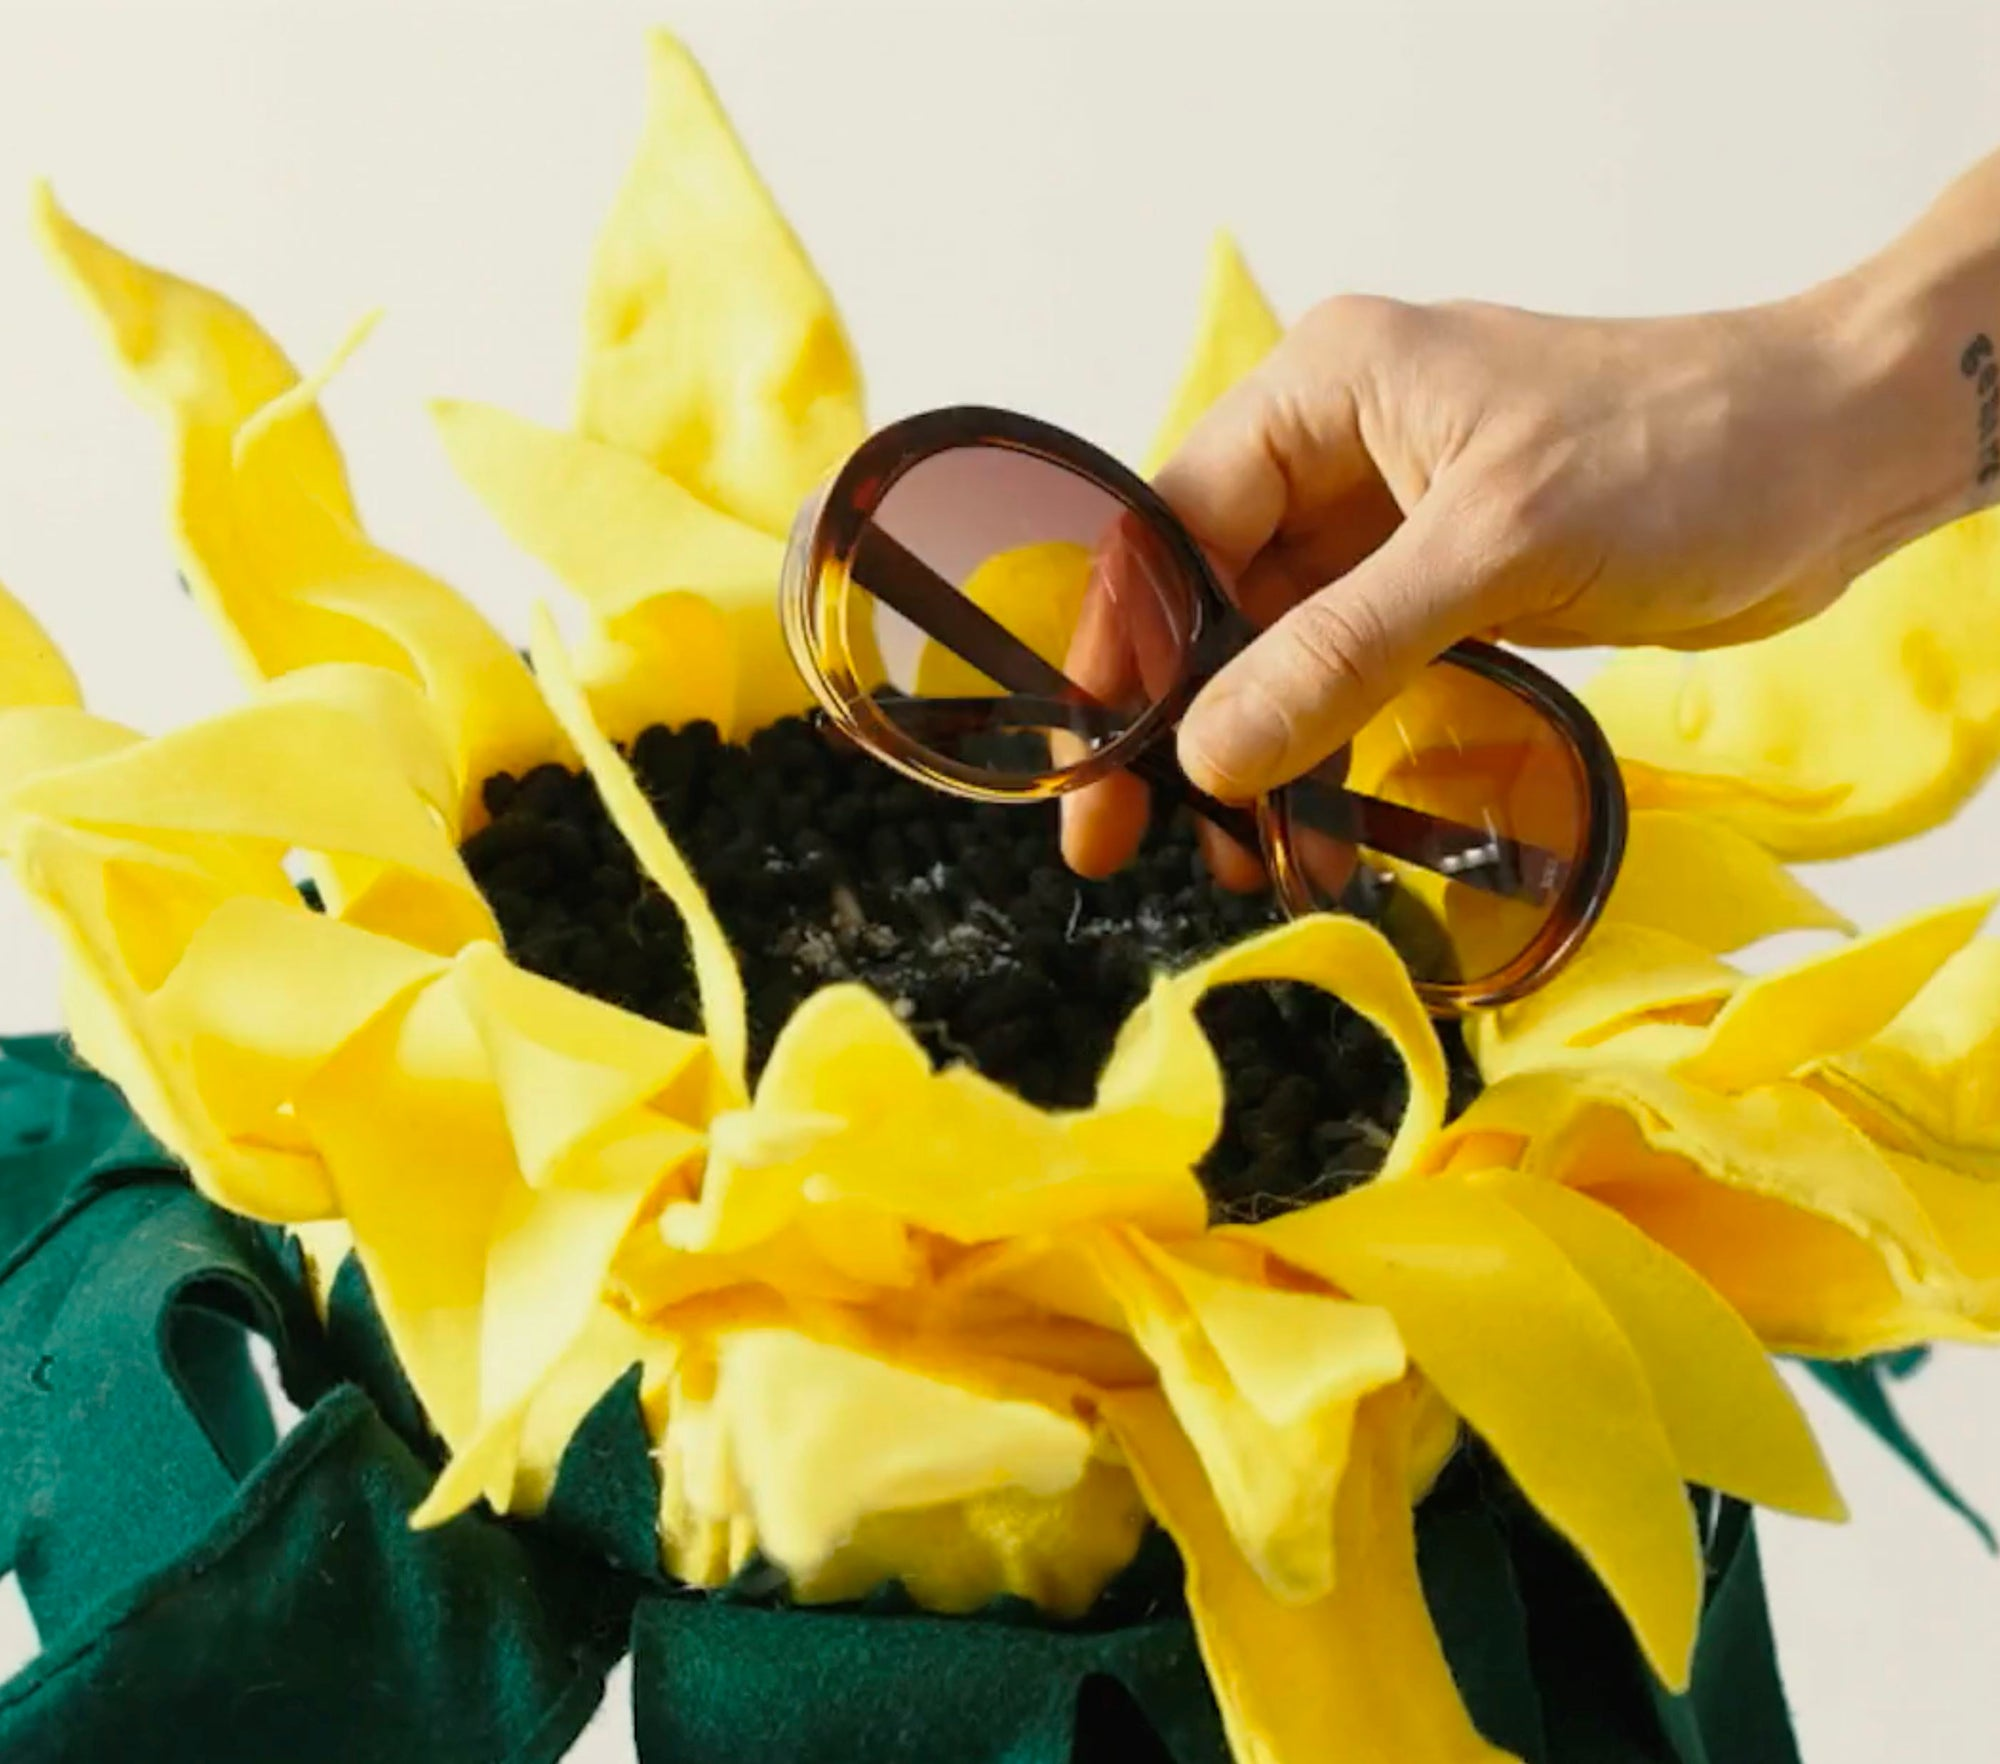 Sunglasses made from plants